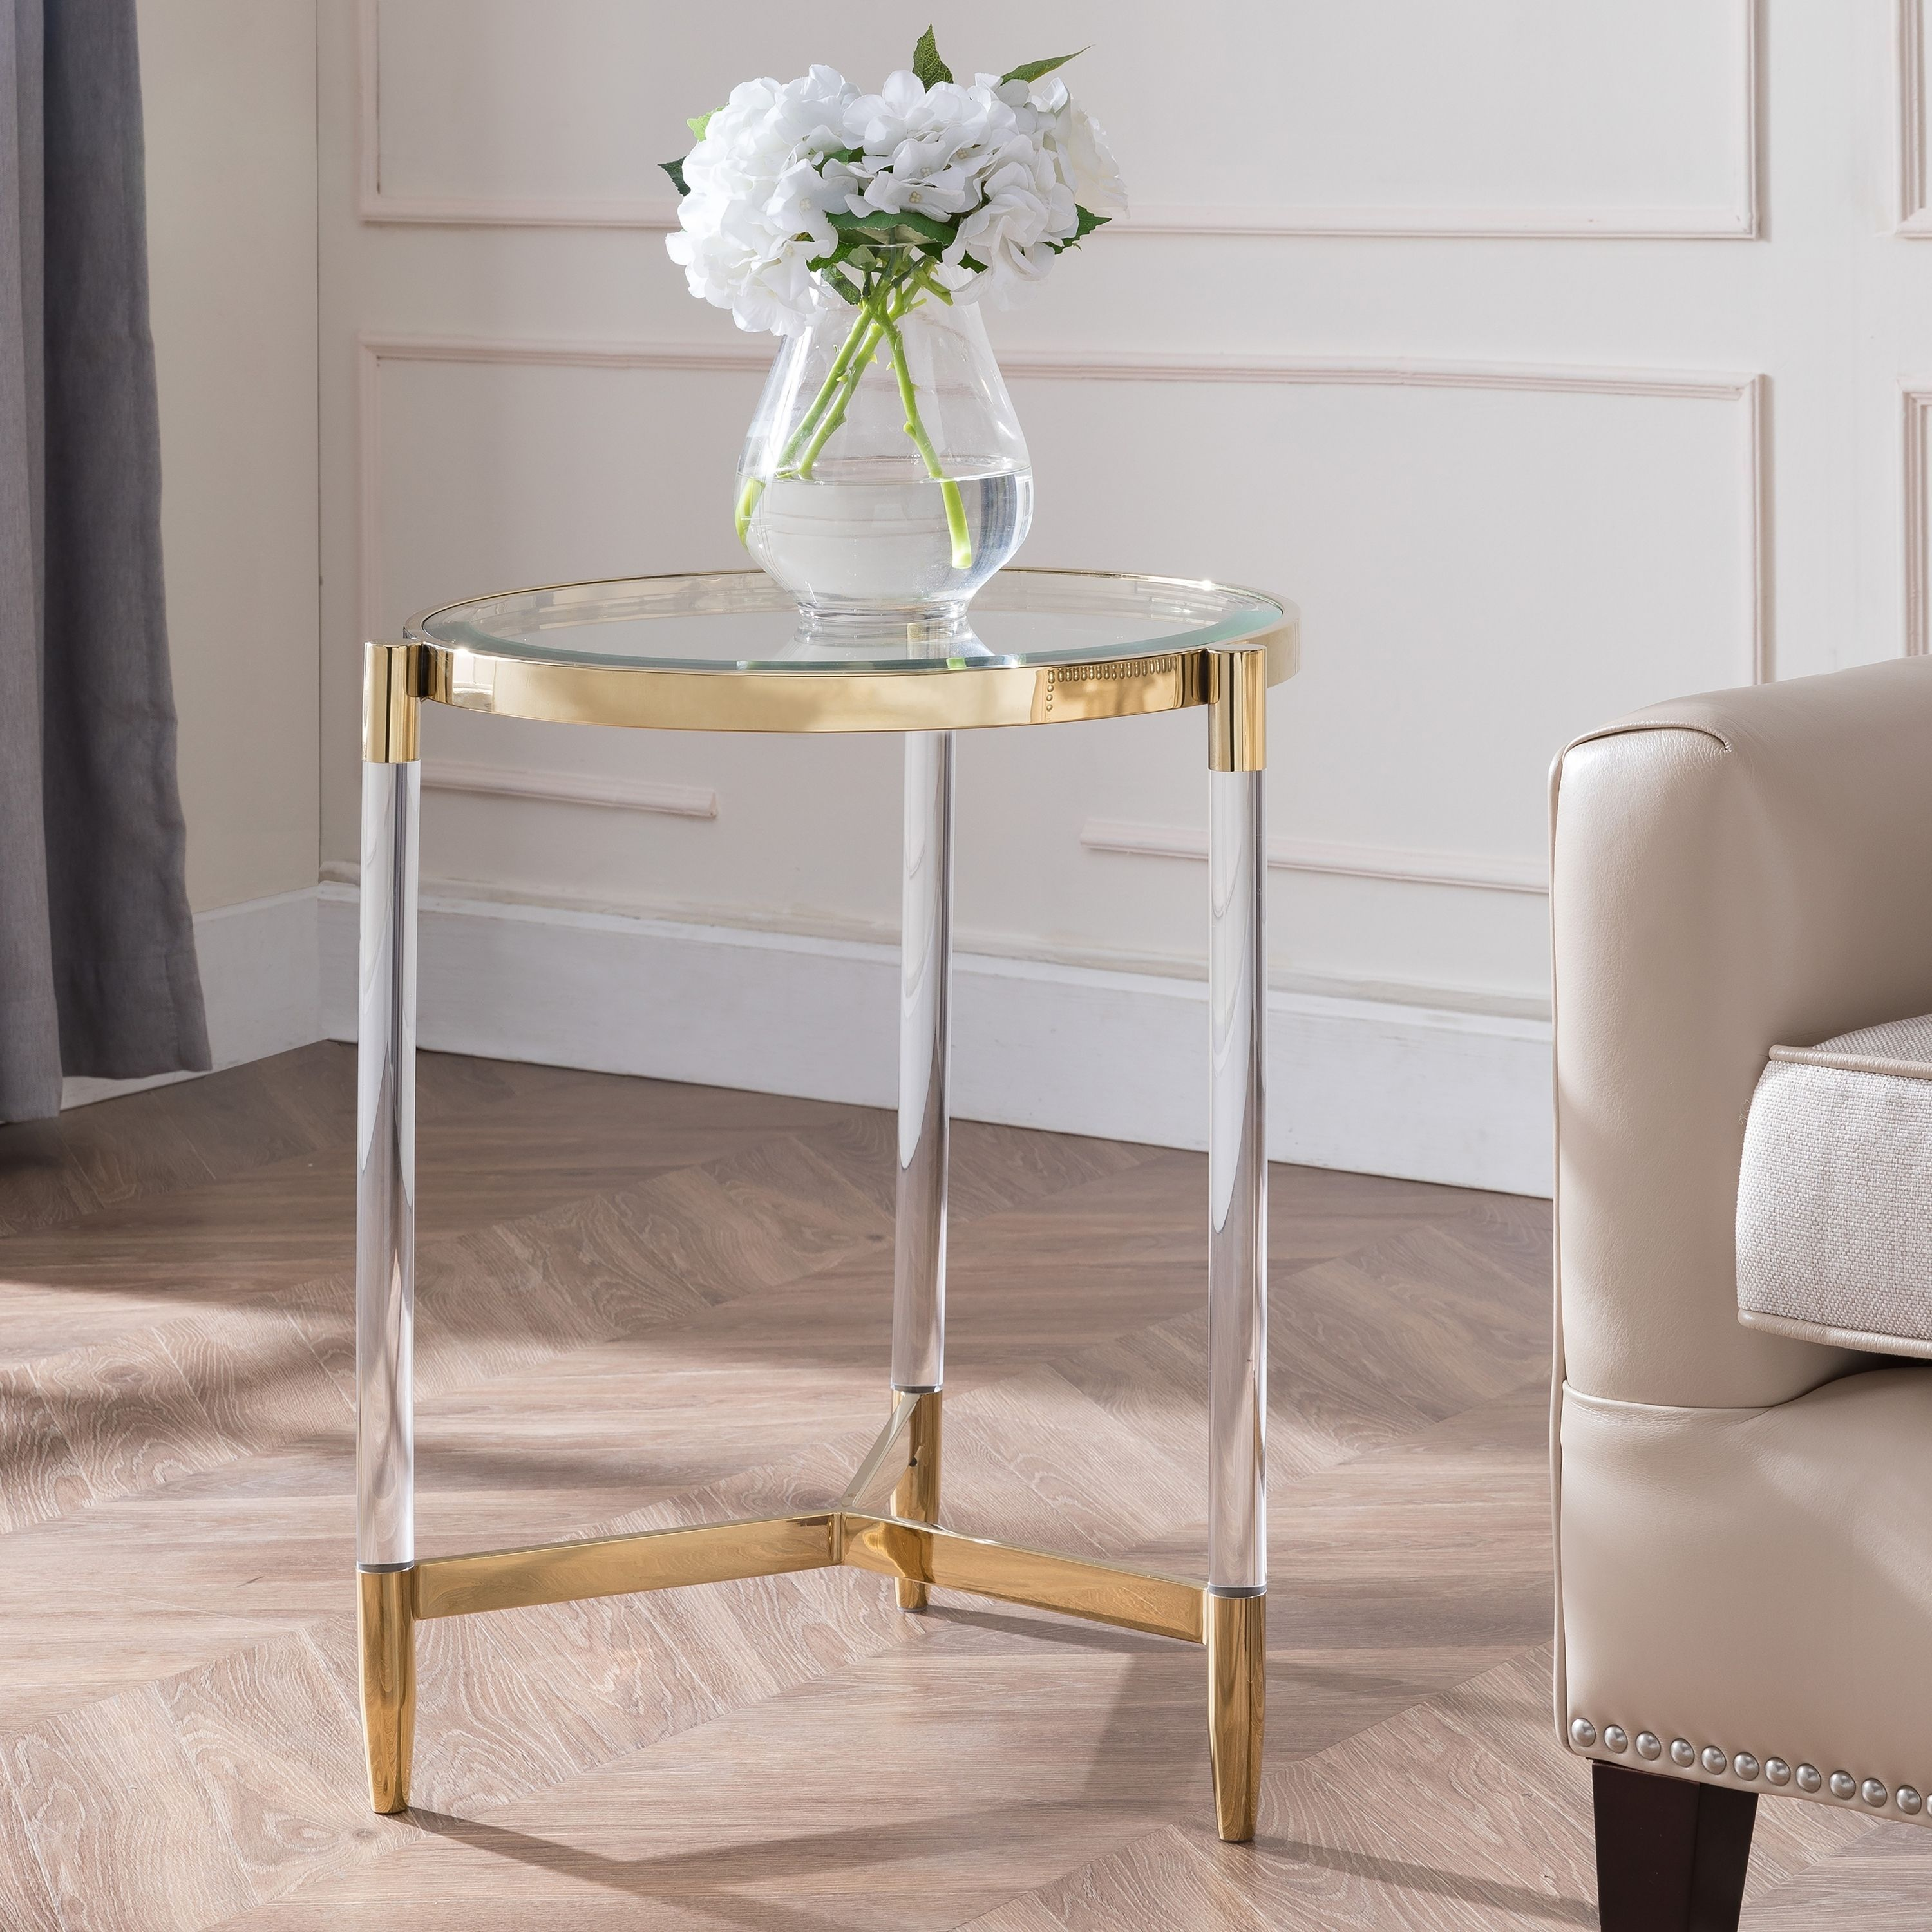 Harper Blvd Cevelo Acrylic End Table Acrylic Furniture End Tables Metallic Accents Living Room